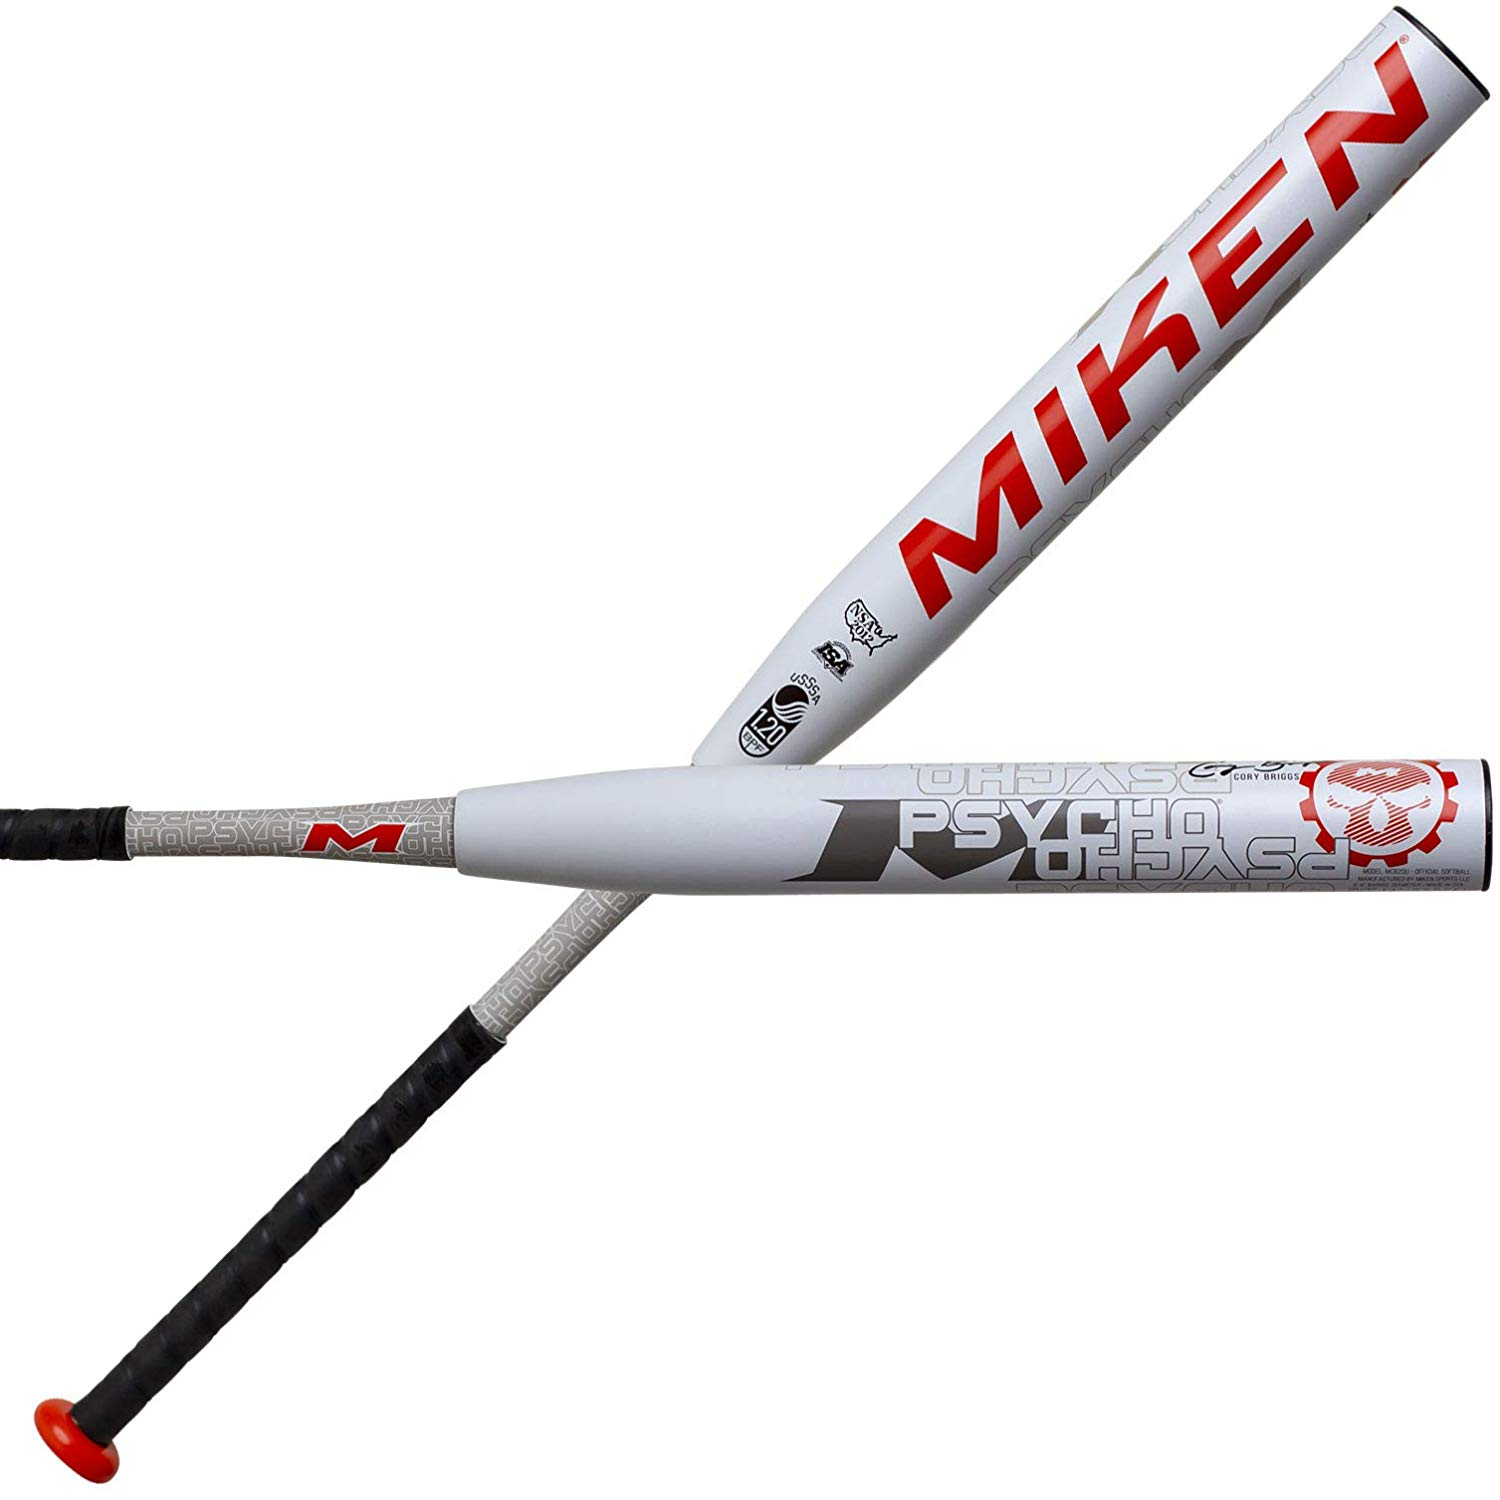 miken-2020-cory-briggs-psycho-14-maxload-usssa-slowpitch-softball-bat-34-inch-26-5-oz MCB20U-3-265 Miken 658925042973 Mikens breakthrough tetra-core tech optimizes performance by utilizing an inner core